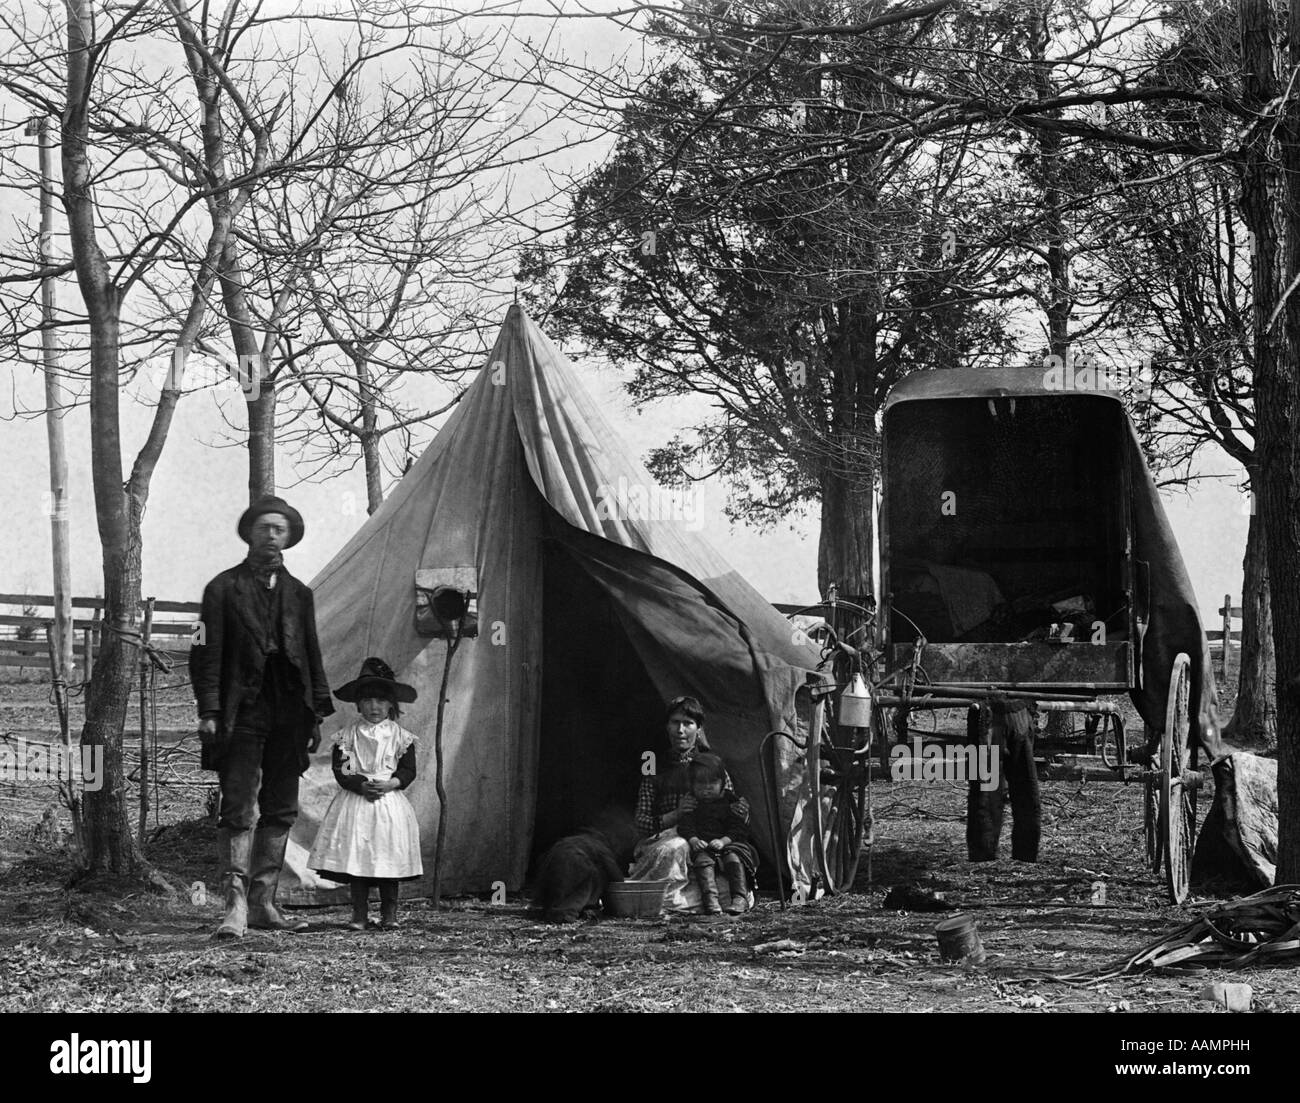 19TH CENTURY GYPSY CAMP FAMILY FATHER MOTHER DAUGHTER IN FRONT OF TENT NEXT TO WAGON - Stock Image